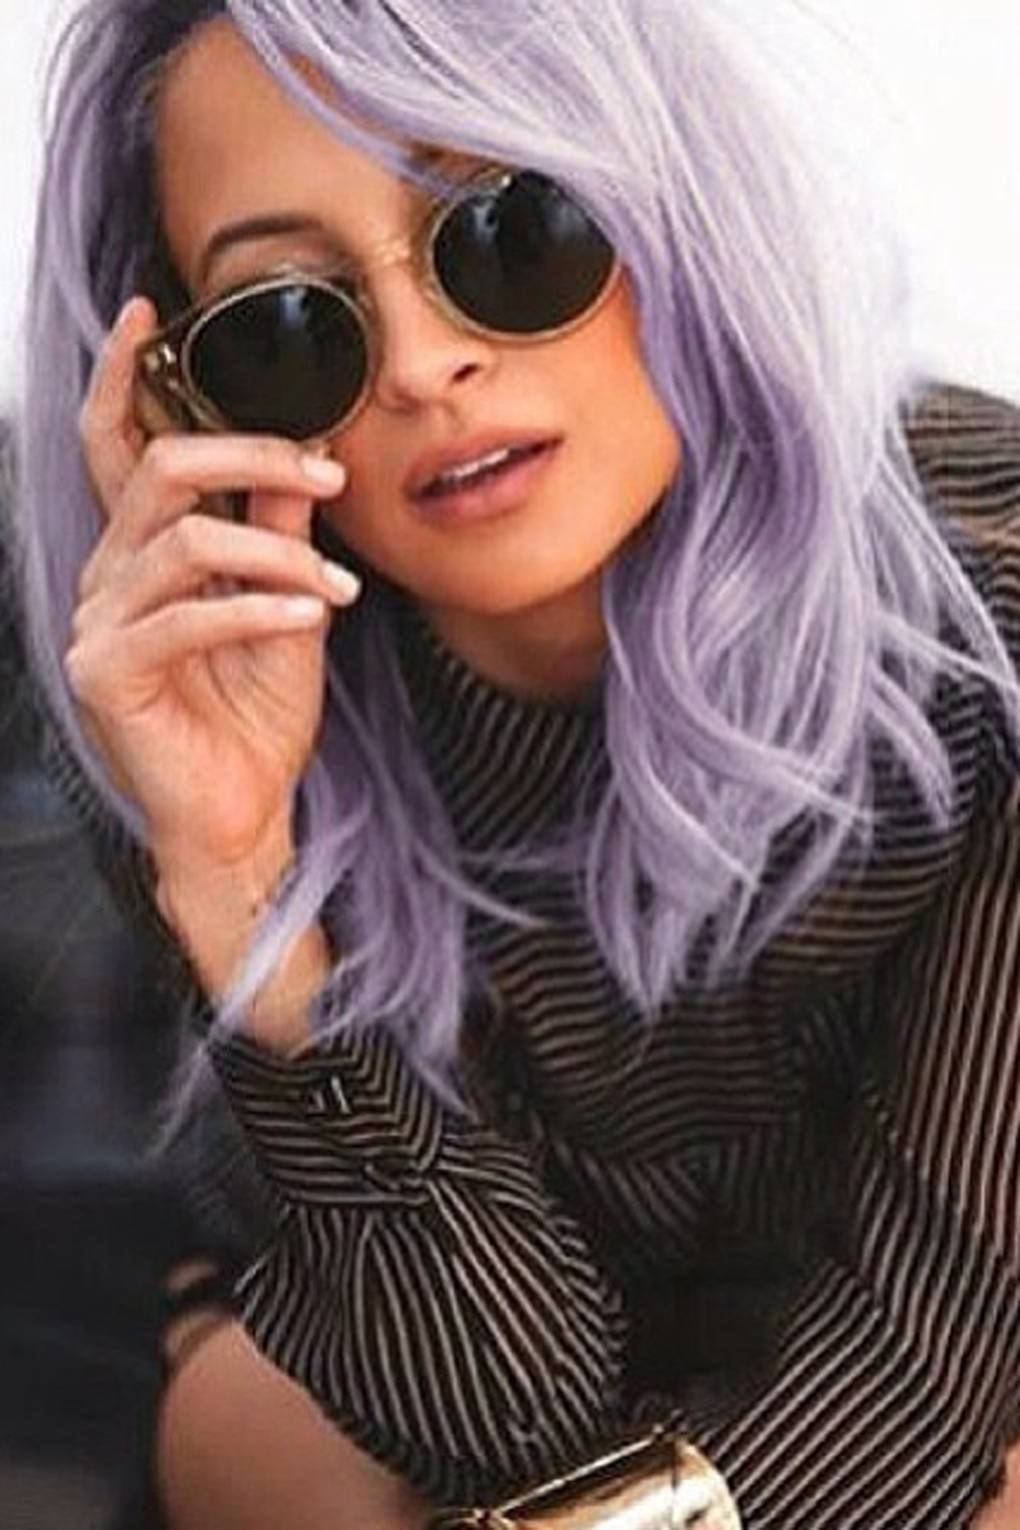 Richie nicole lilac hair photos